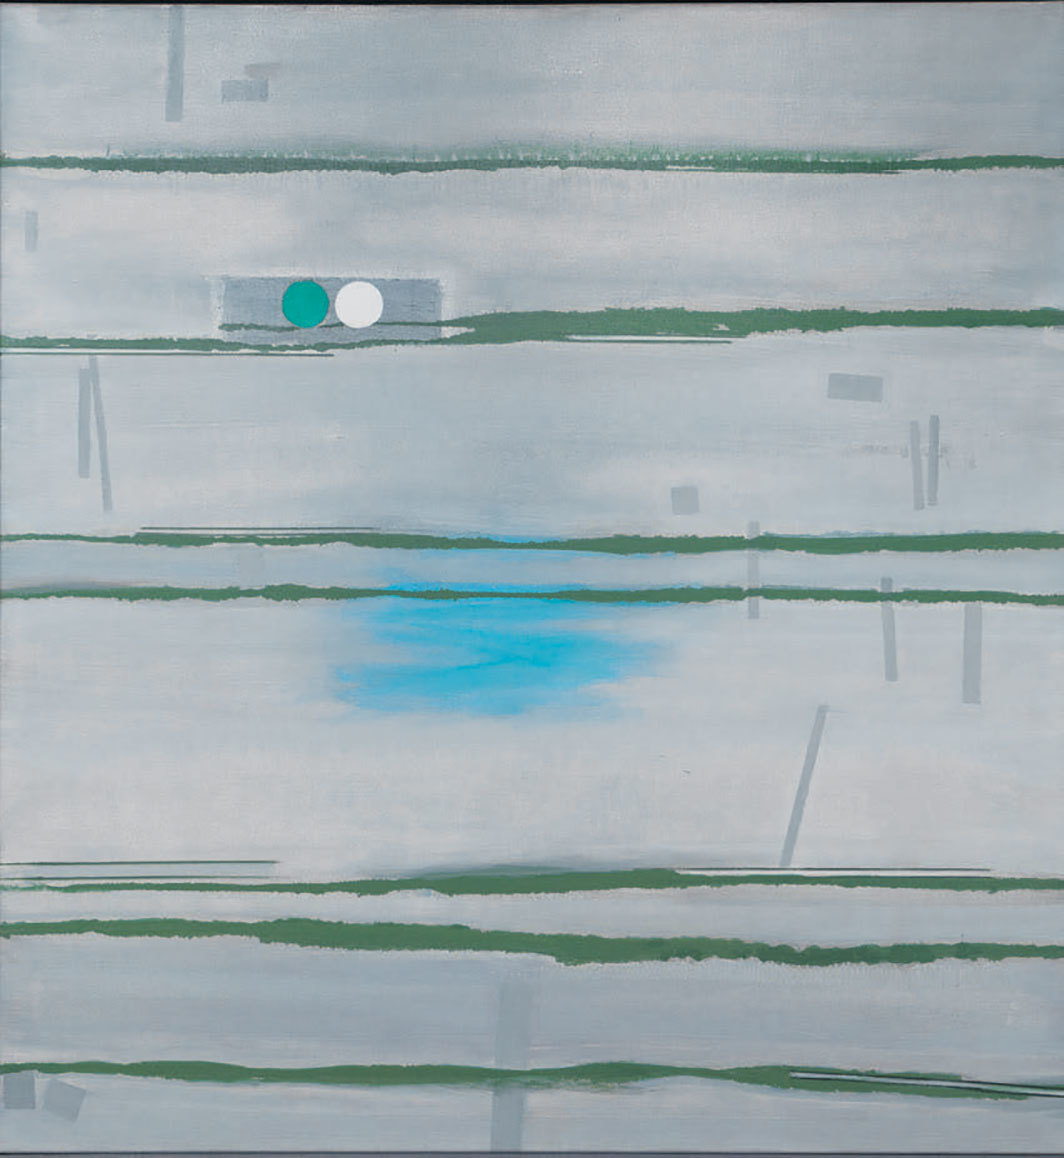 "Prunella Clough, Disused Land, 1999, oil on canvas, 53 × 49""."